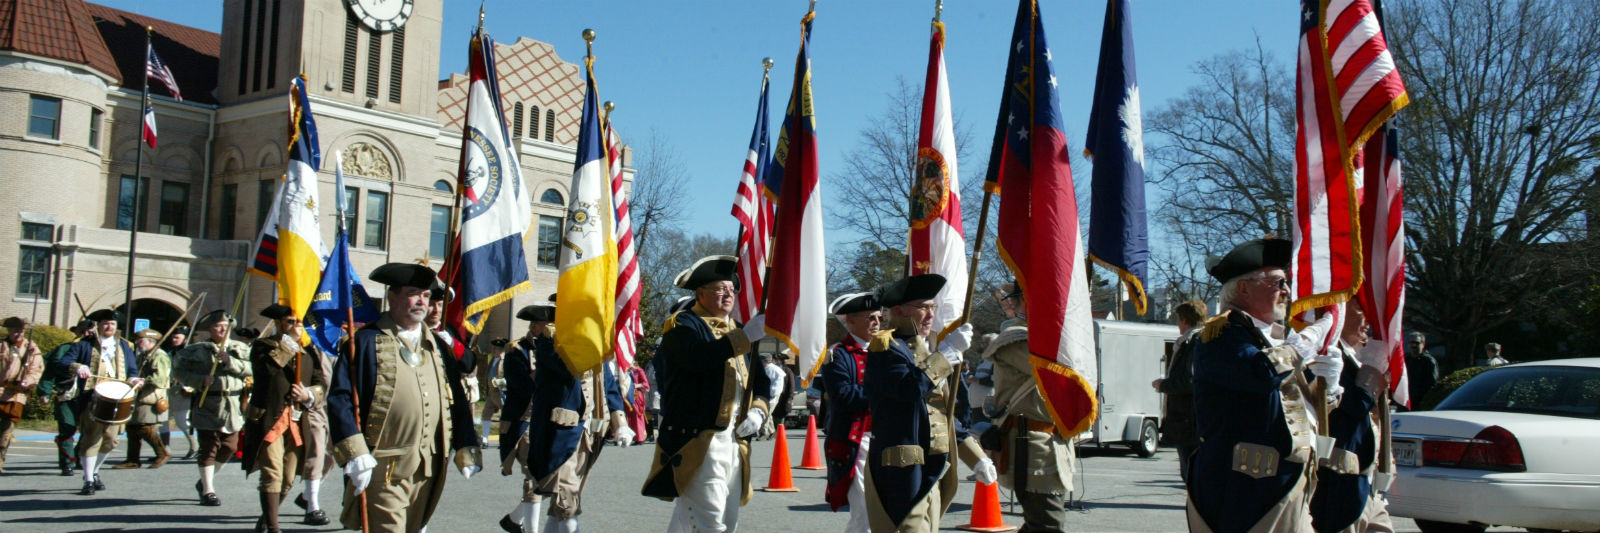 3_Washington-Revolutionary-Days-parade_1600x533.jpg